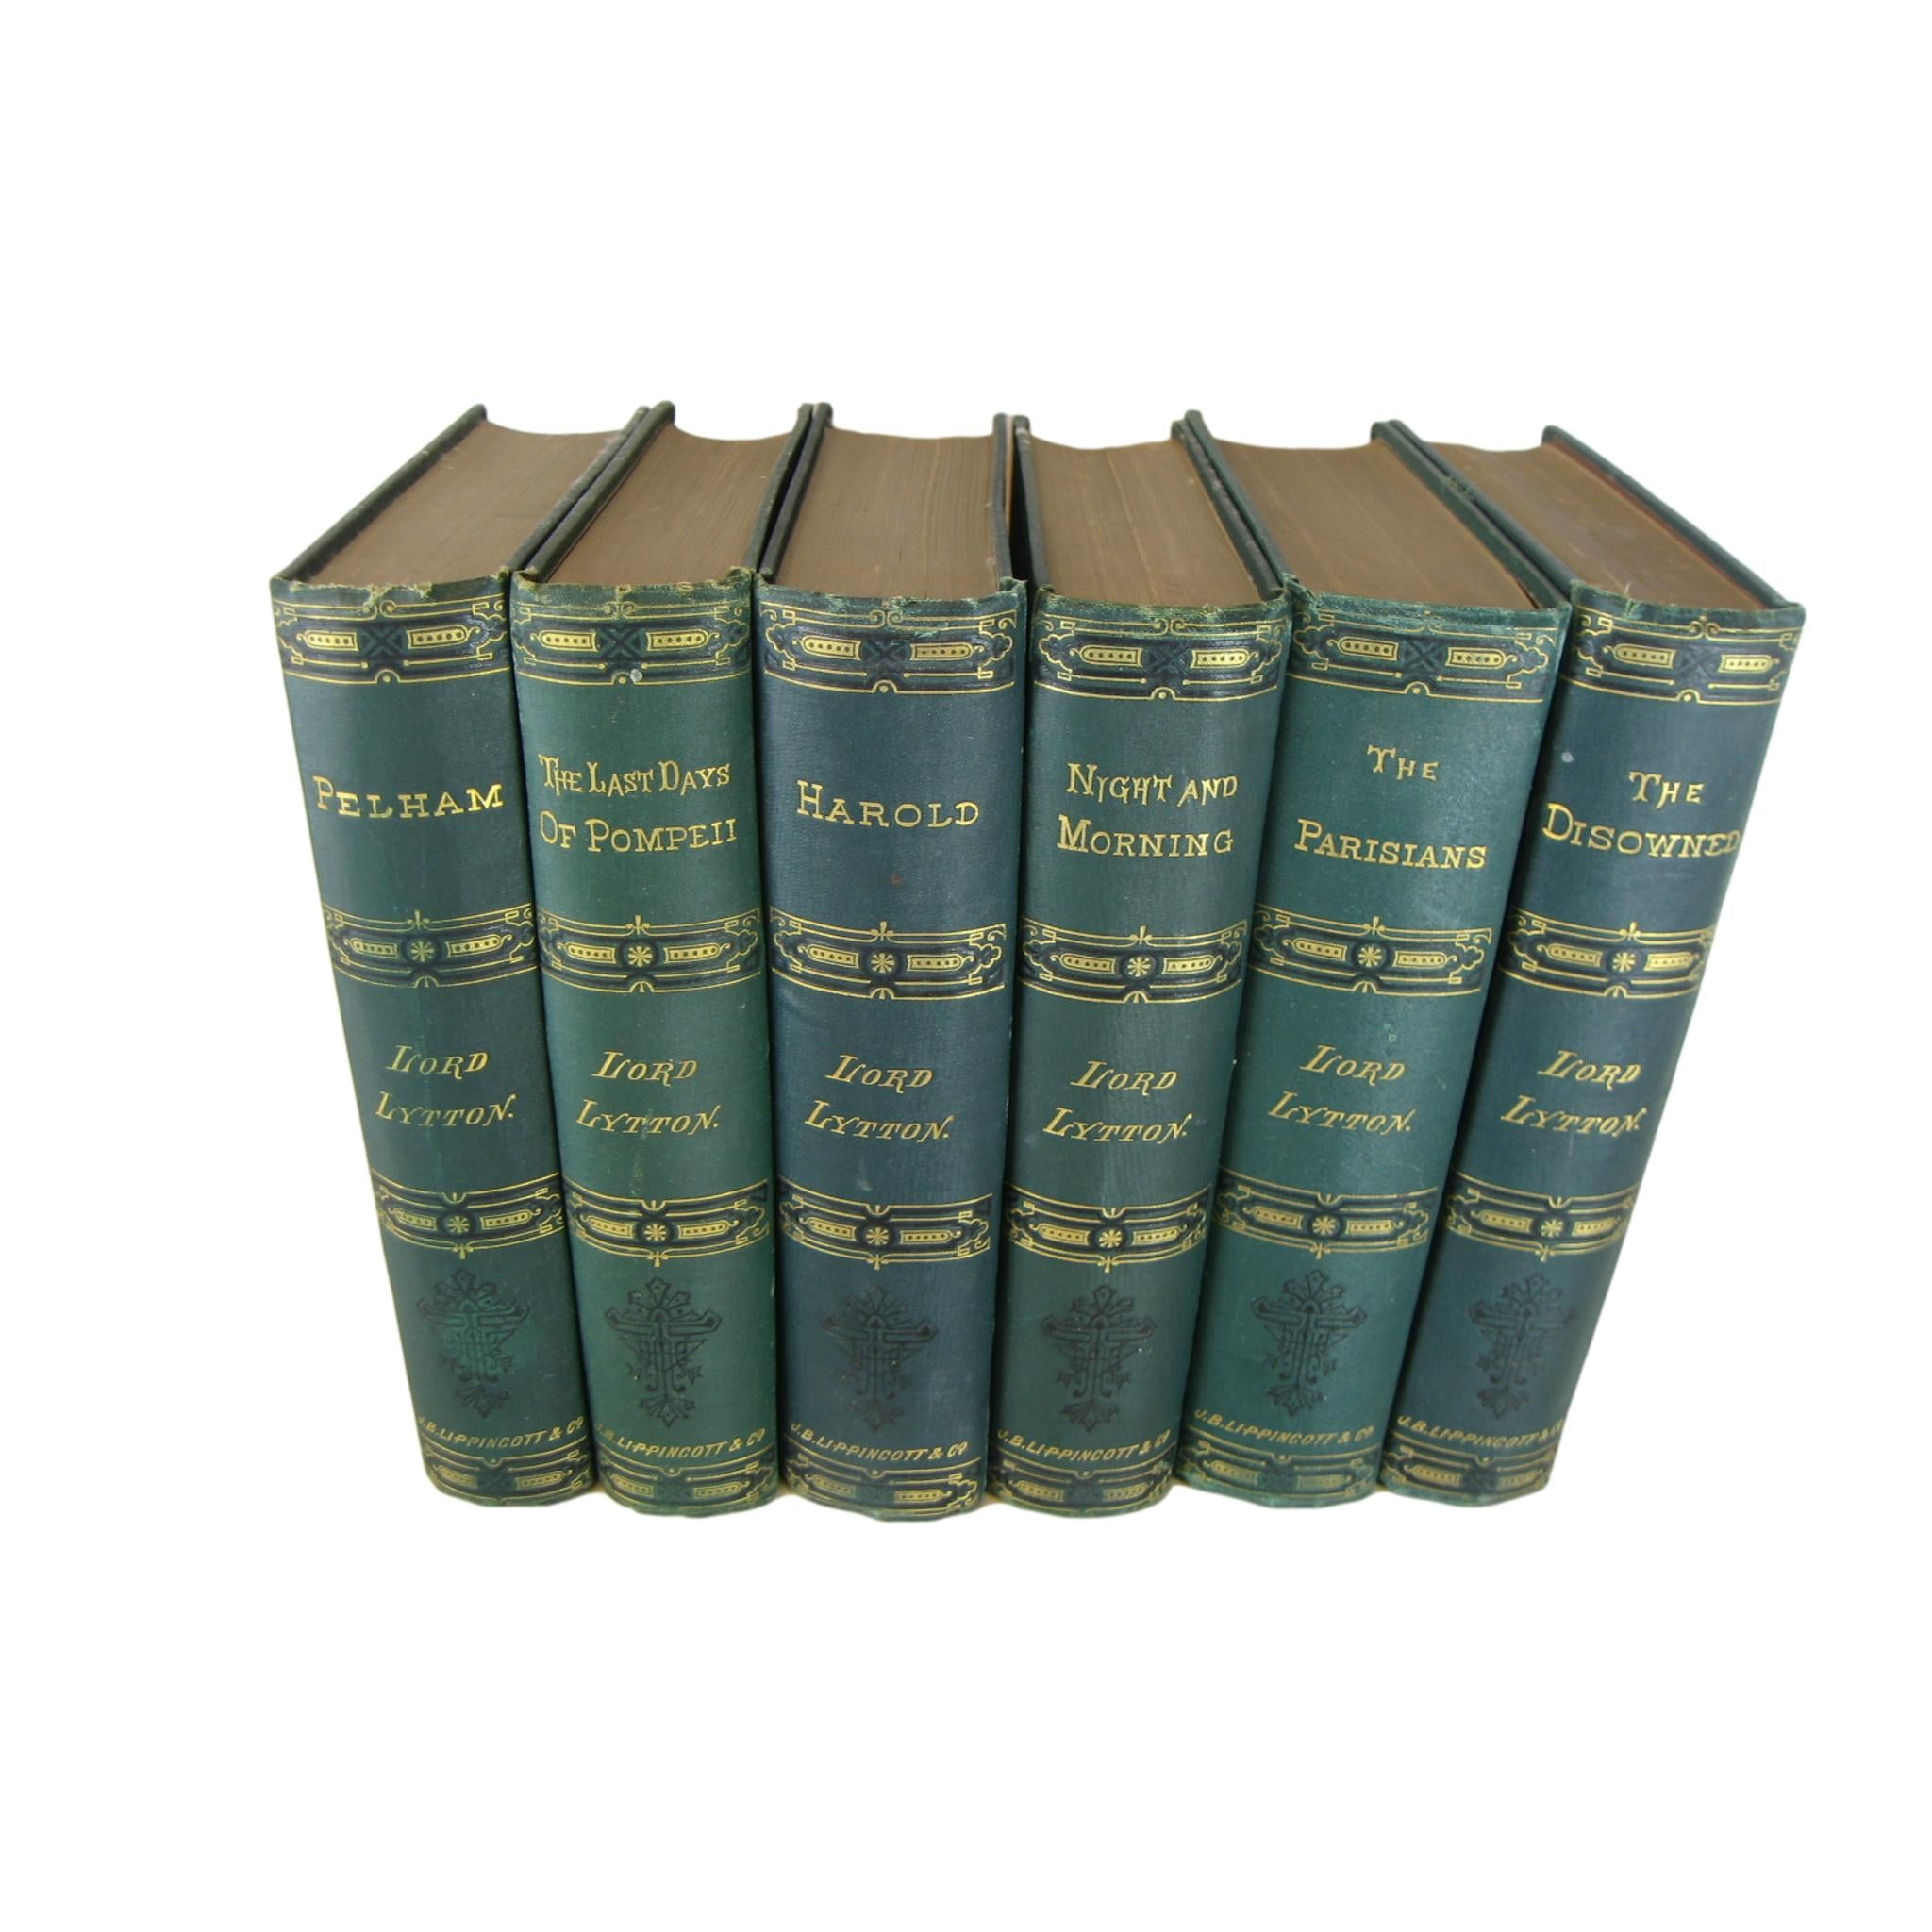 Antique Decorative Book Set of Works of Lord Lyyton, S/6 - Decades of Vintage